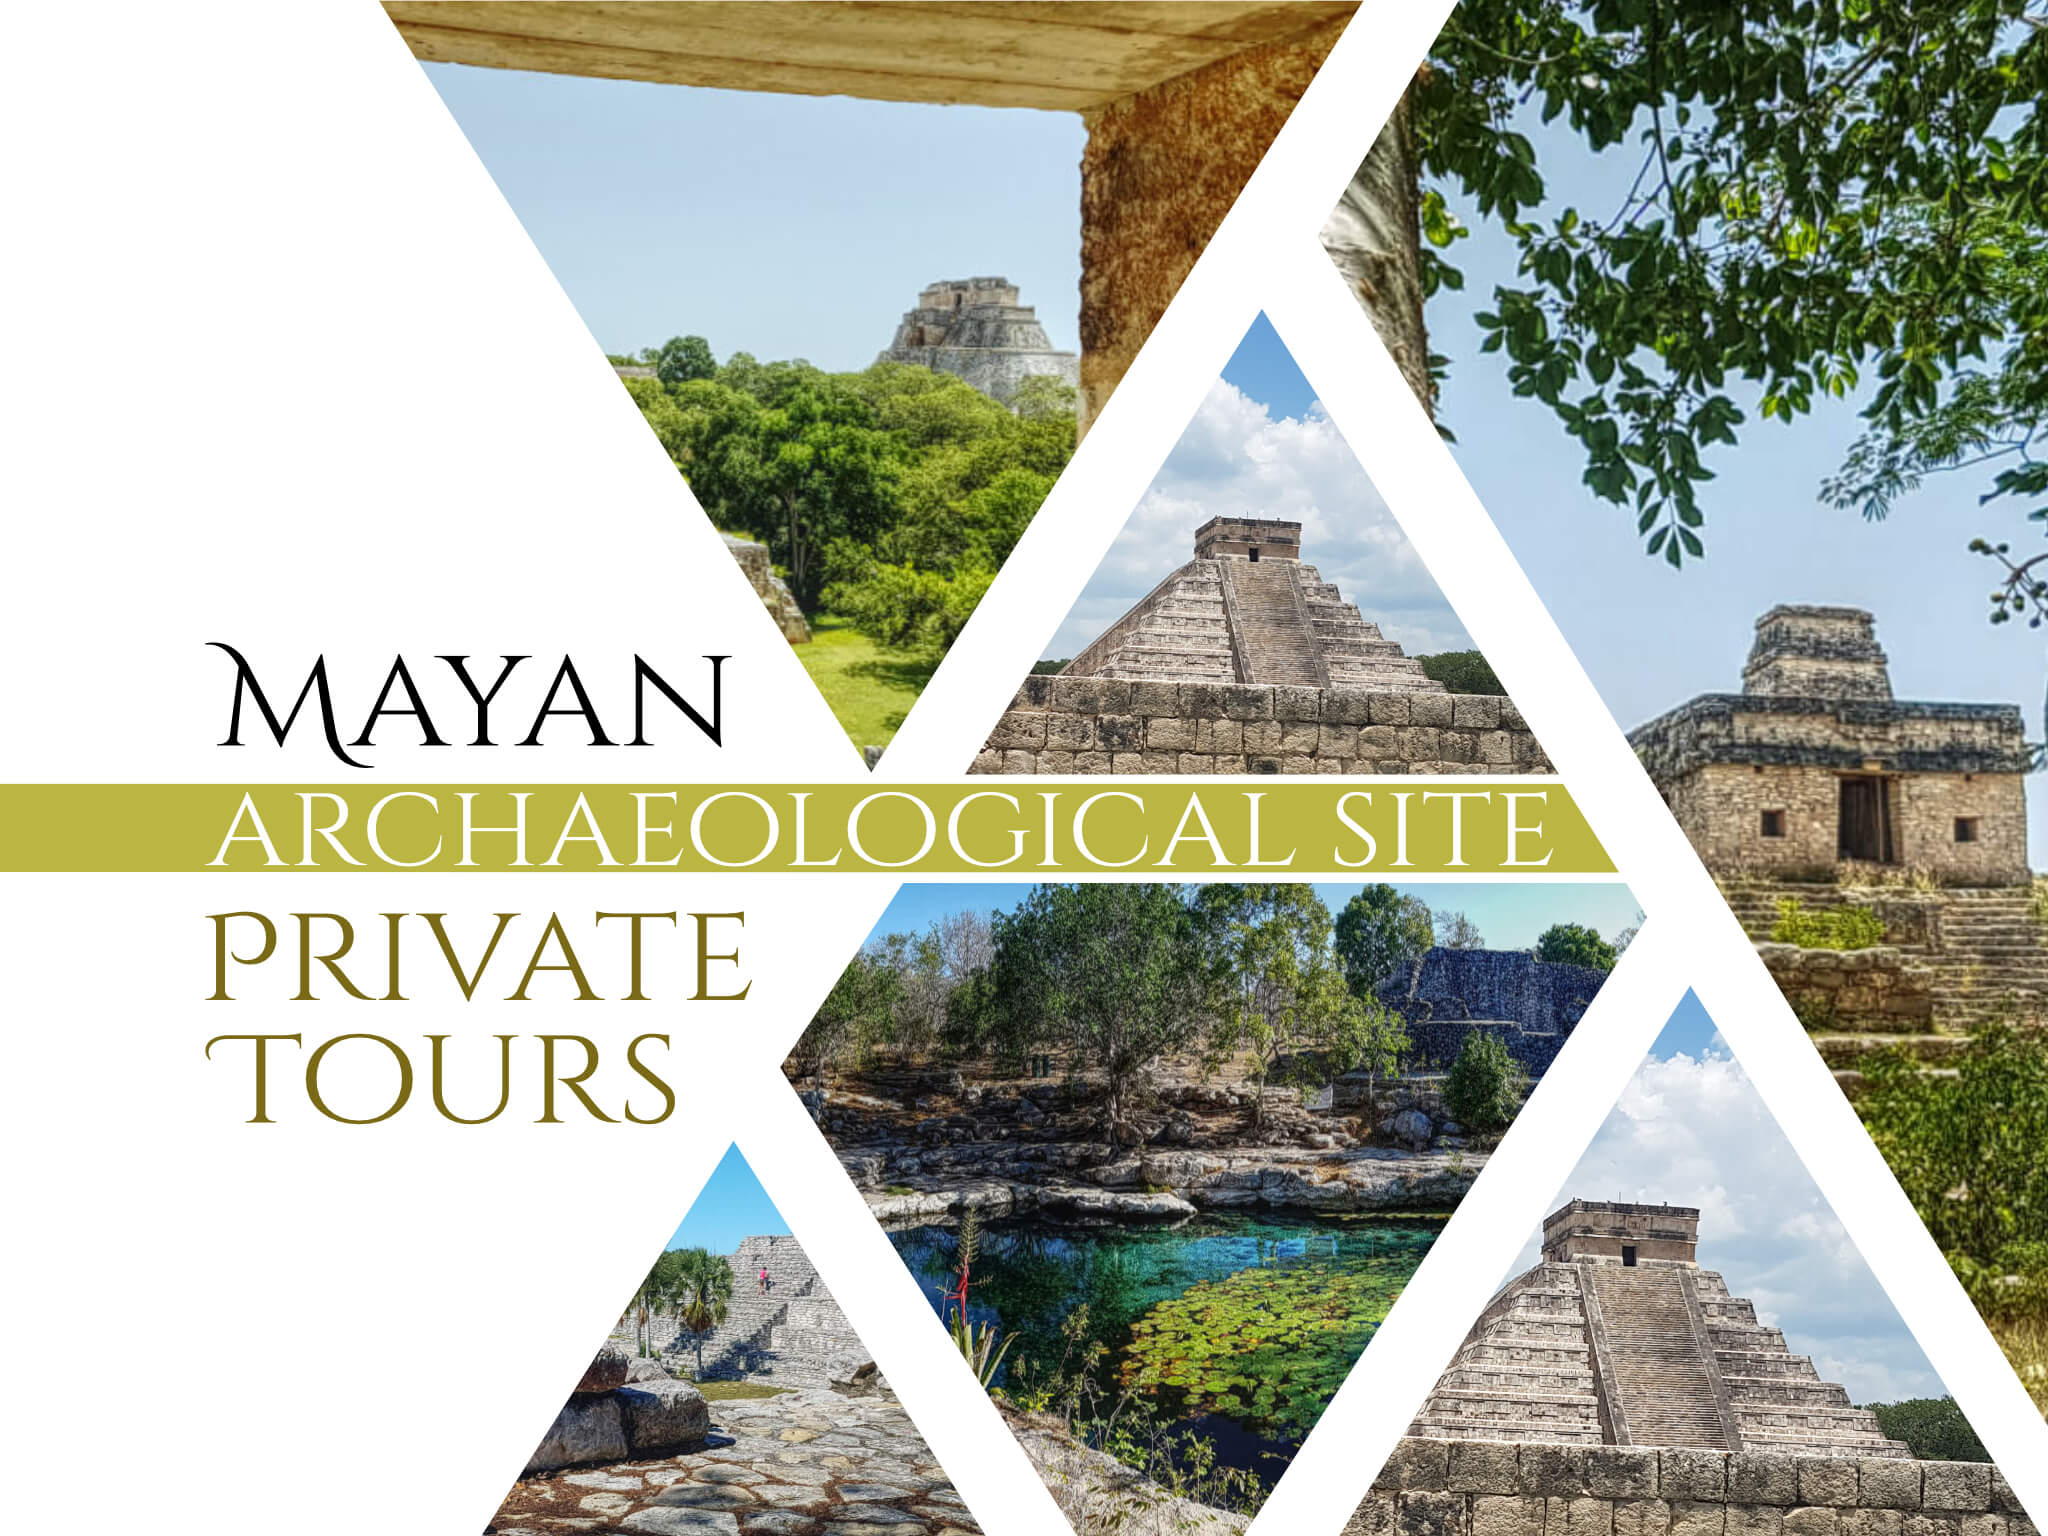 Mayan Archaeological Site Private Tours